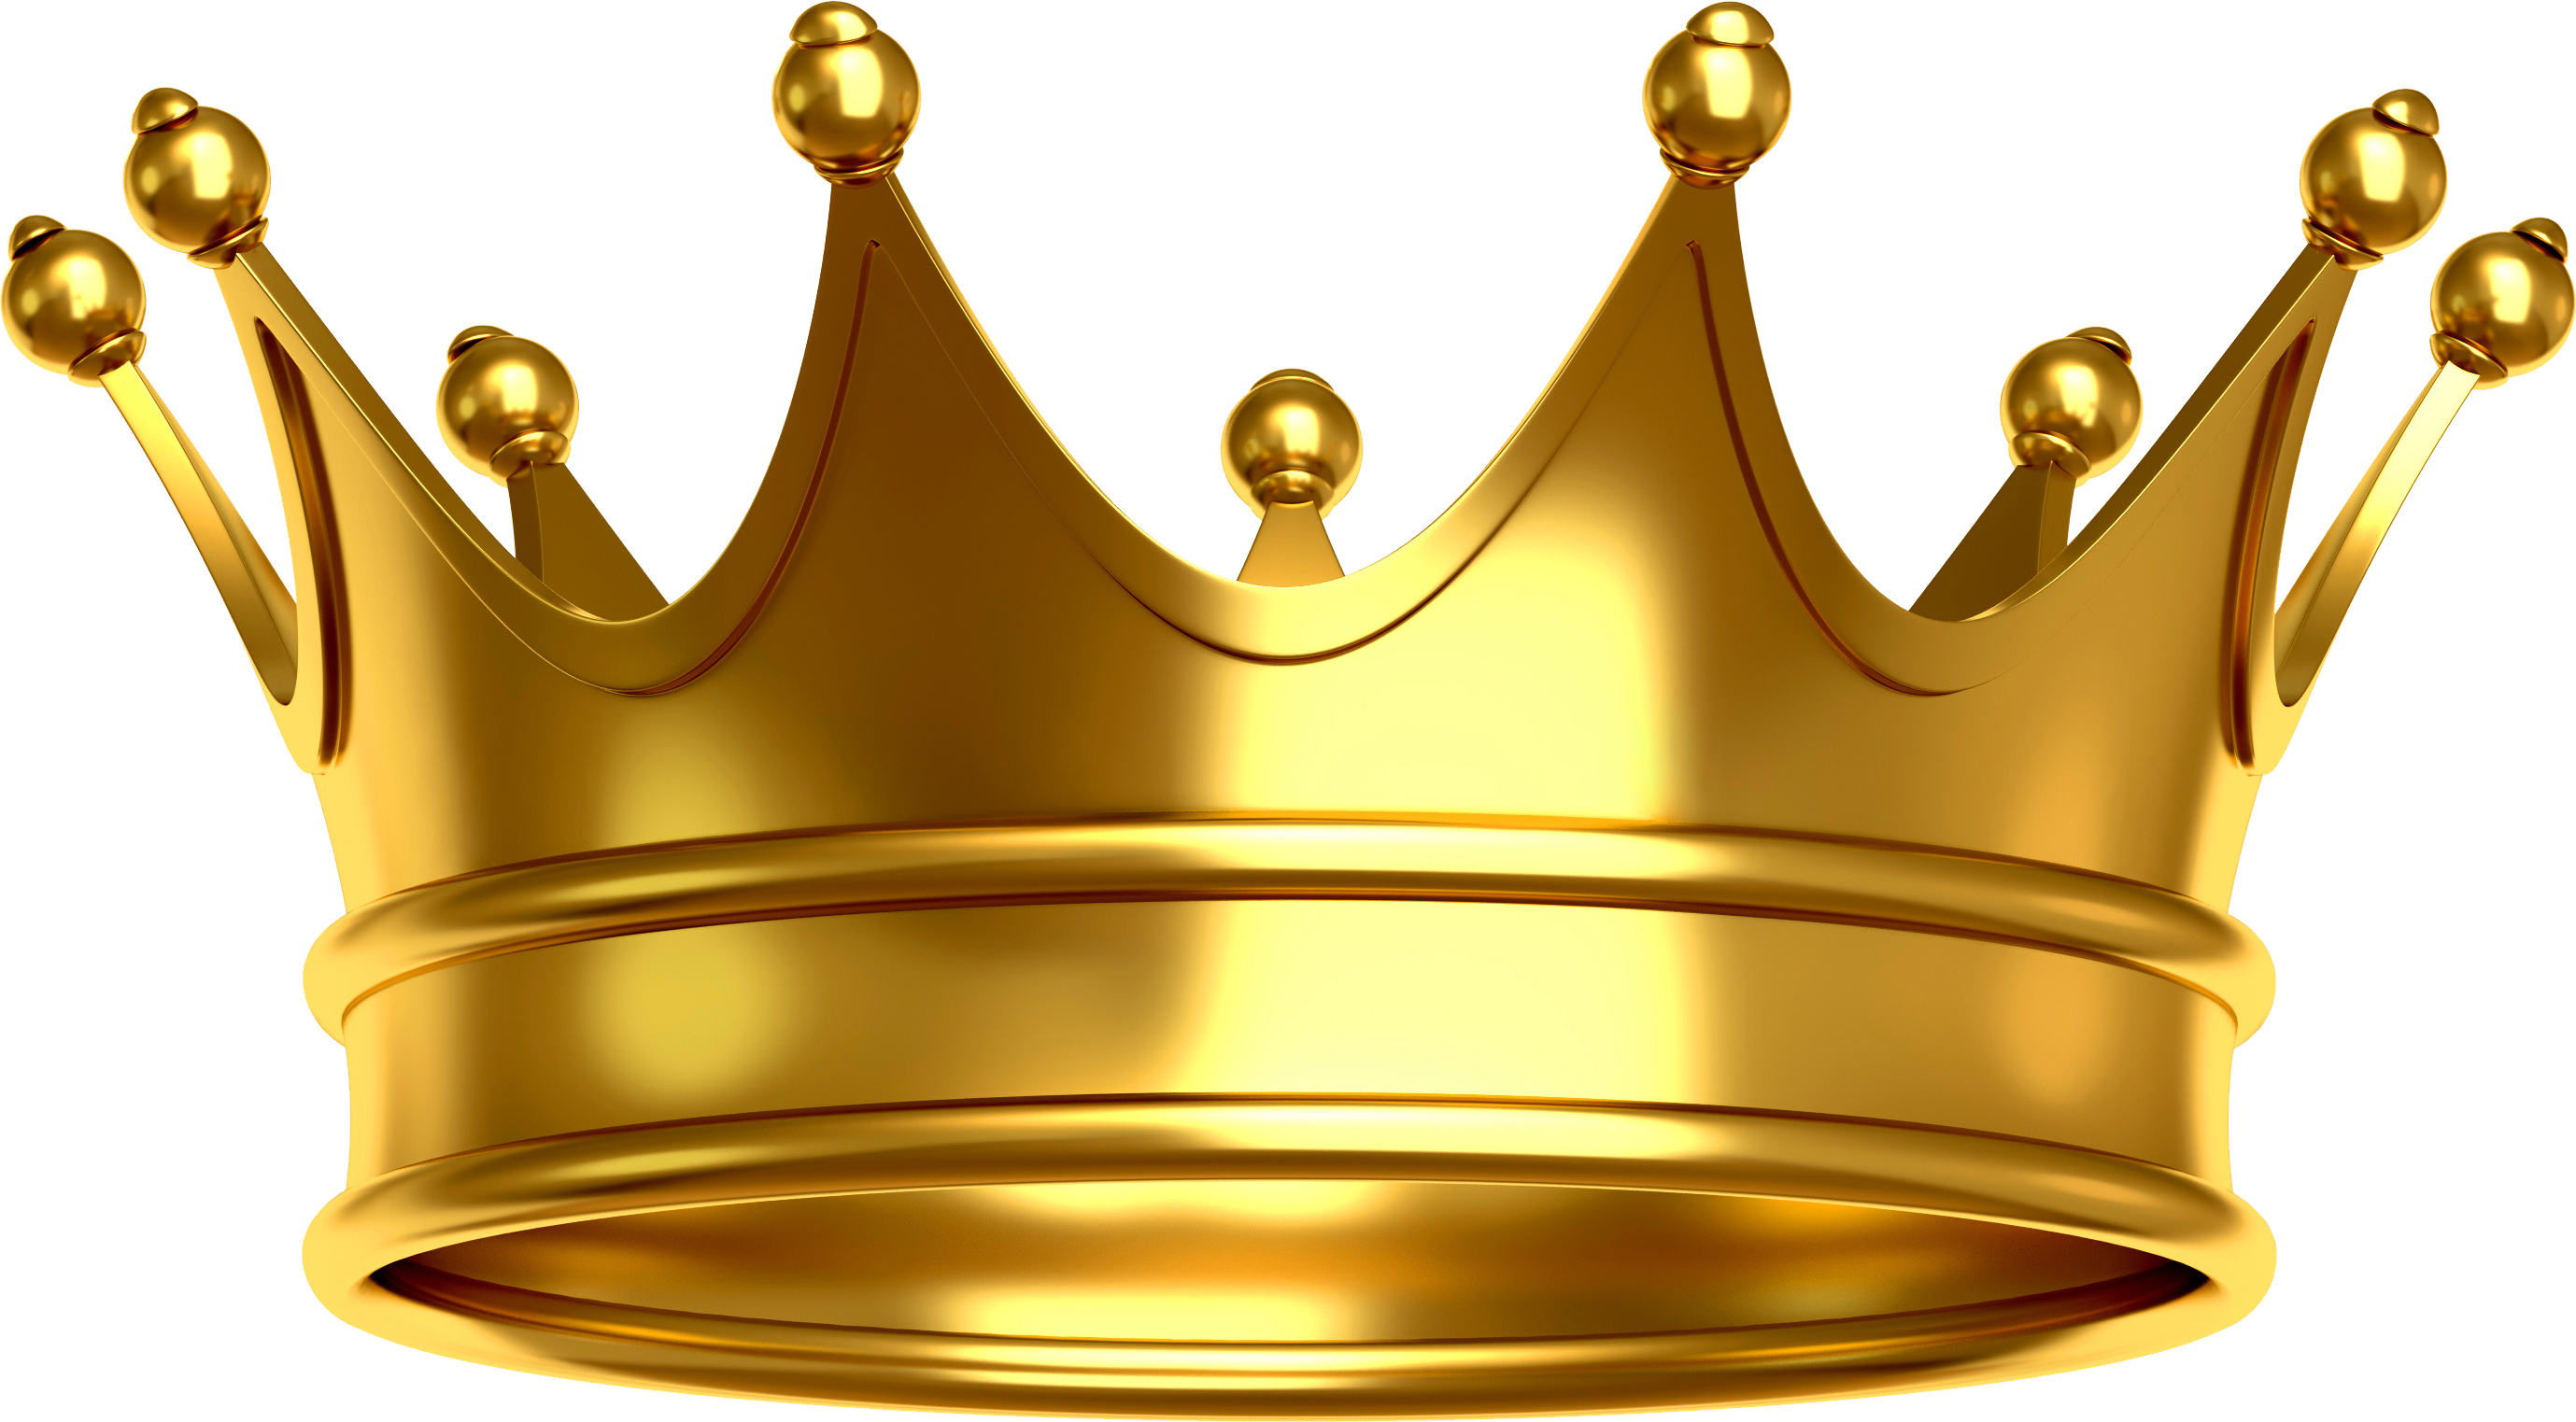 Gold Crown Png (+).